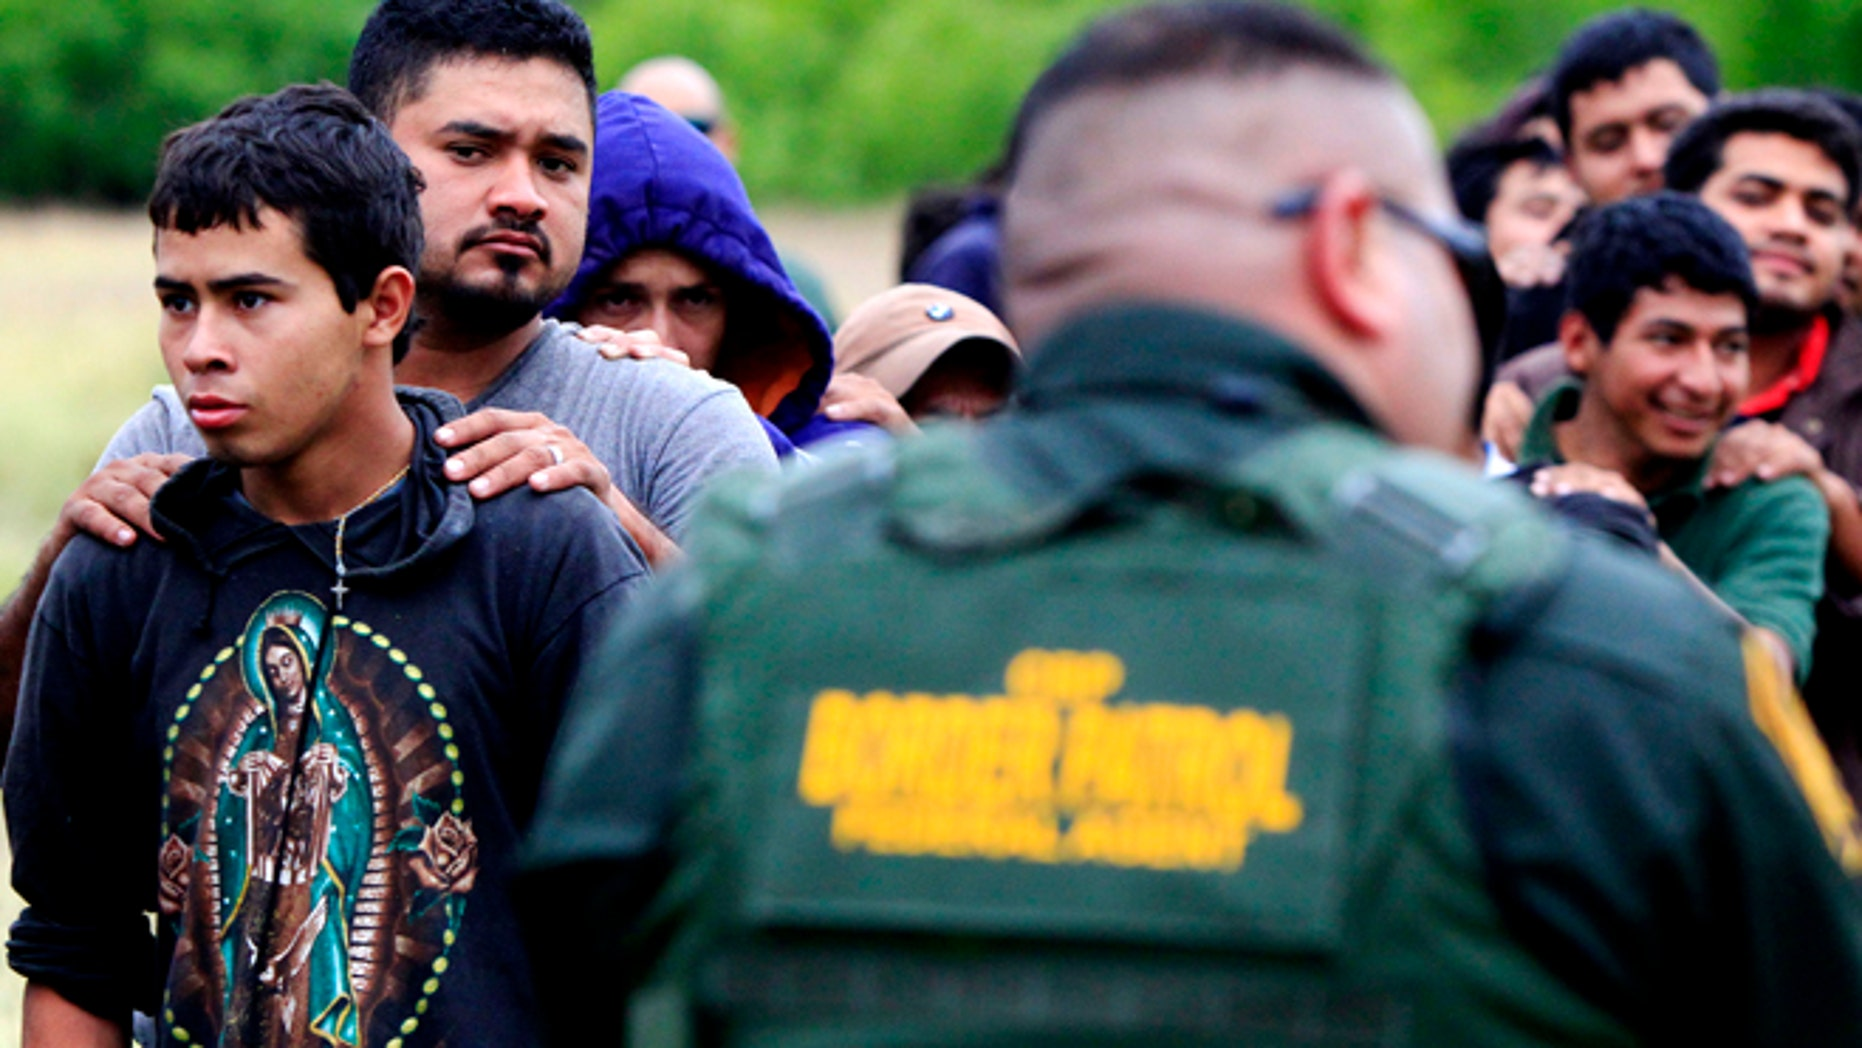 April 17, 2014: Suspected illegal immigrants being detained  by U.S. Border Patrol agents, in  McAllen, Texas.